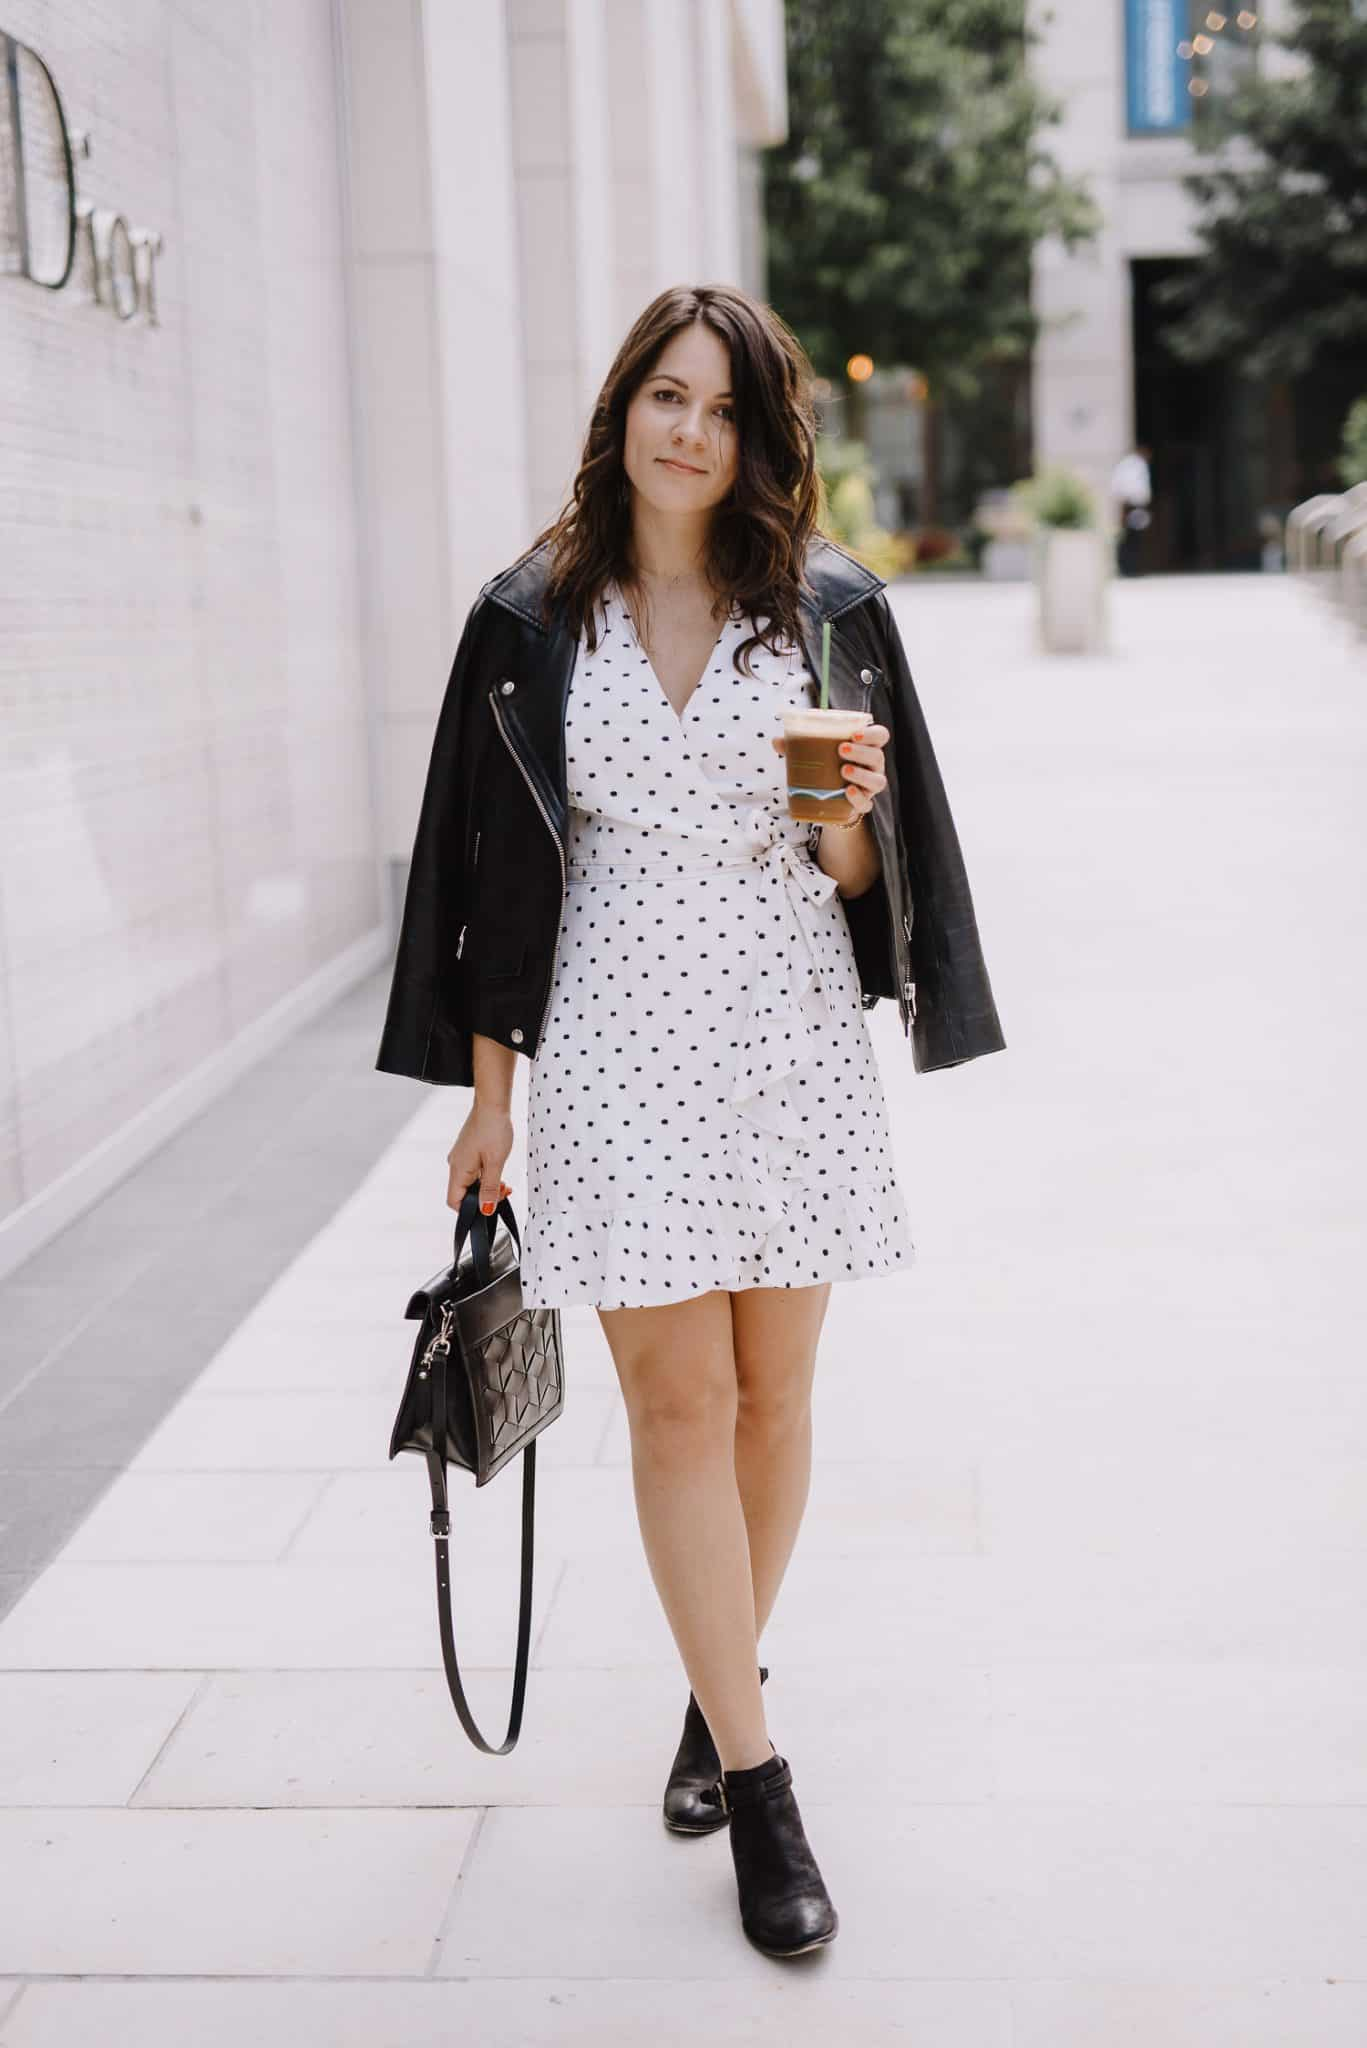 leather jacket and white dress, boots and dress outfit ideas - My Style Vita